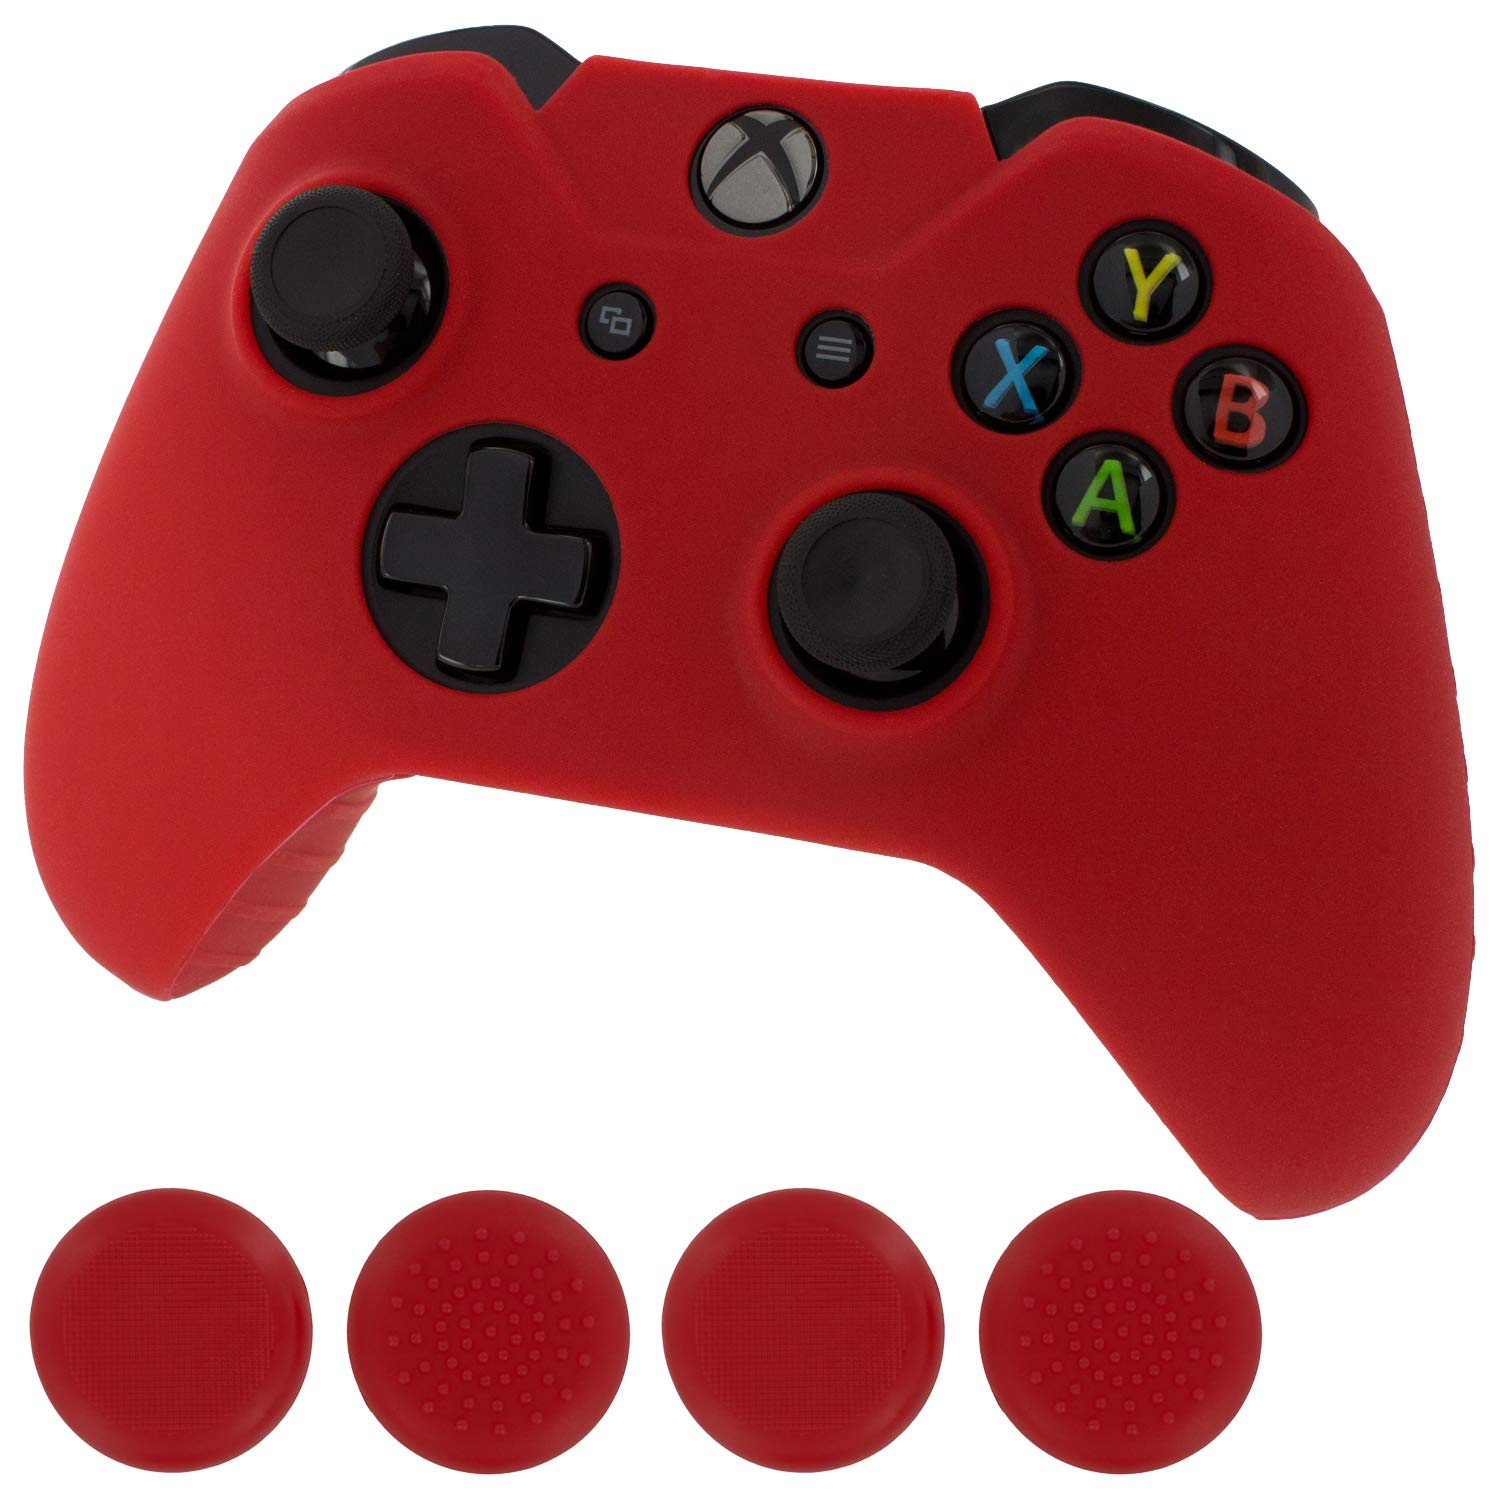 Assecure red protect & grip pack soft silicone skin grip protective cover rubber bumper case with ribbed handle grip & TPU analogue thumb grip stick caps for Microsoft Xbox One controller by Assecure